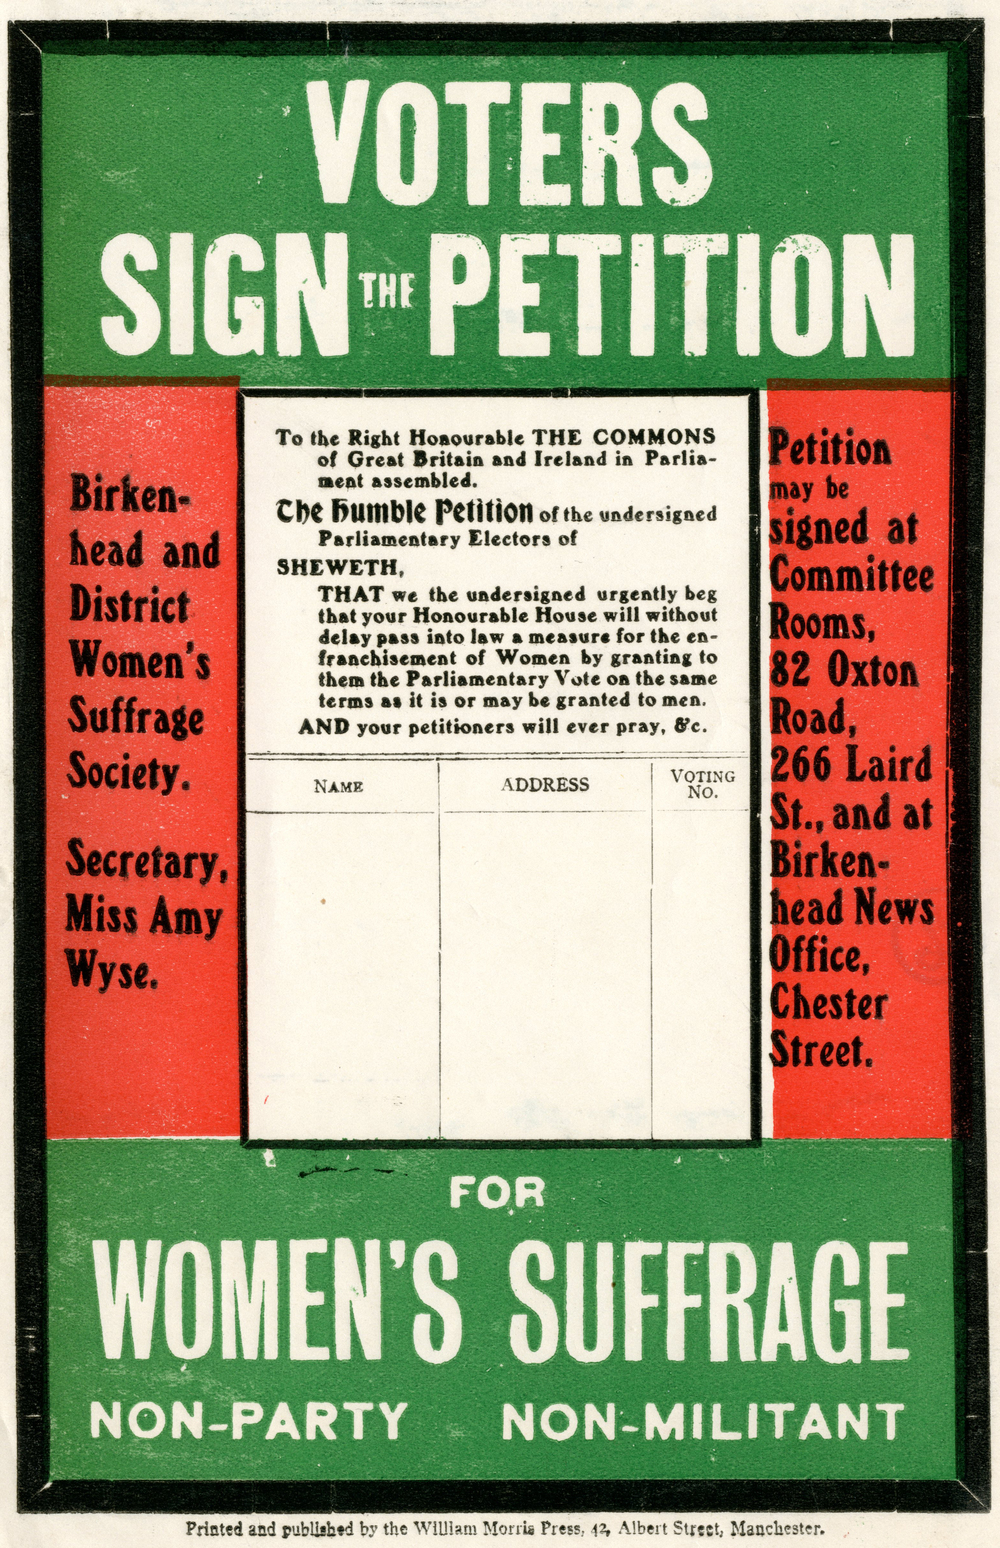 Pamphlet, Voters Sign the Petition, 1910